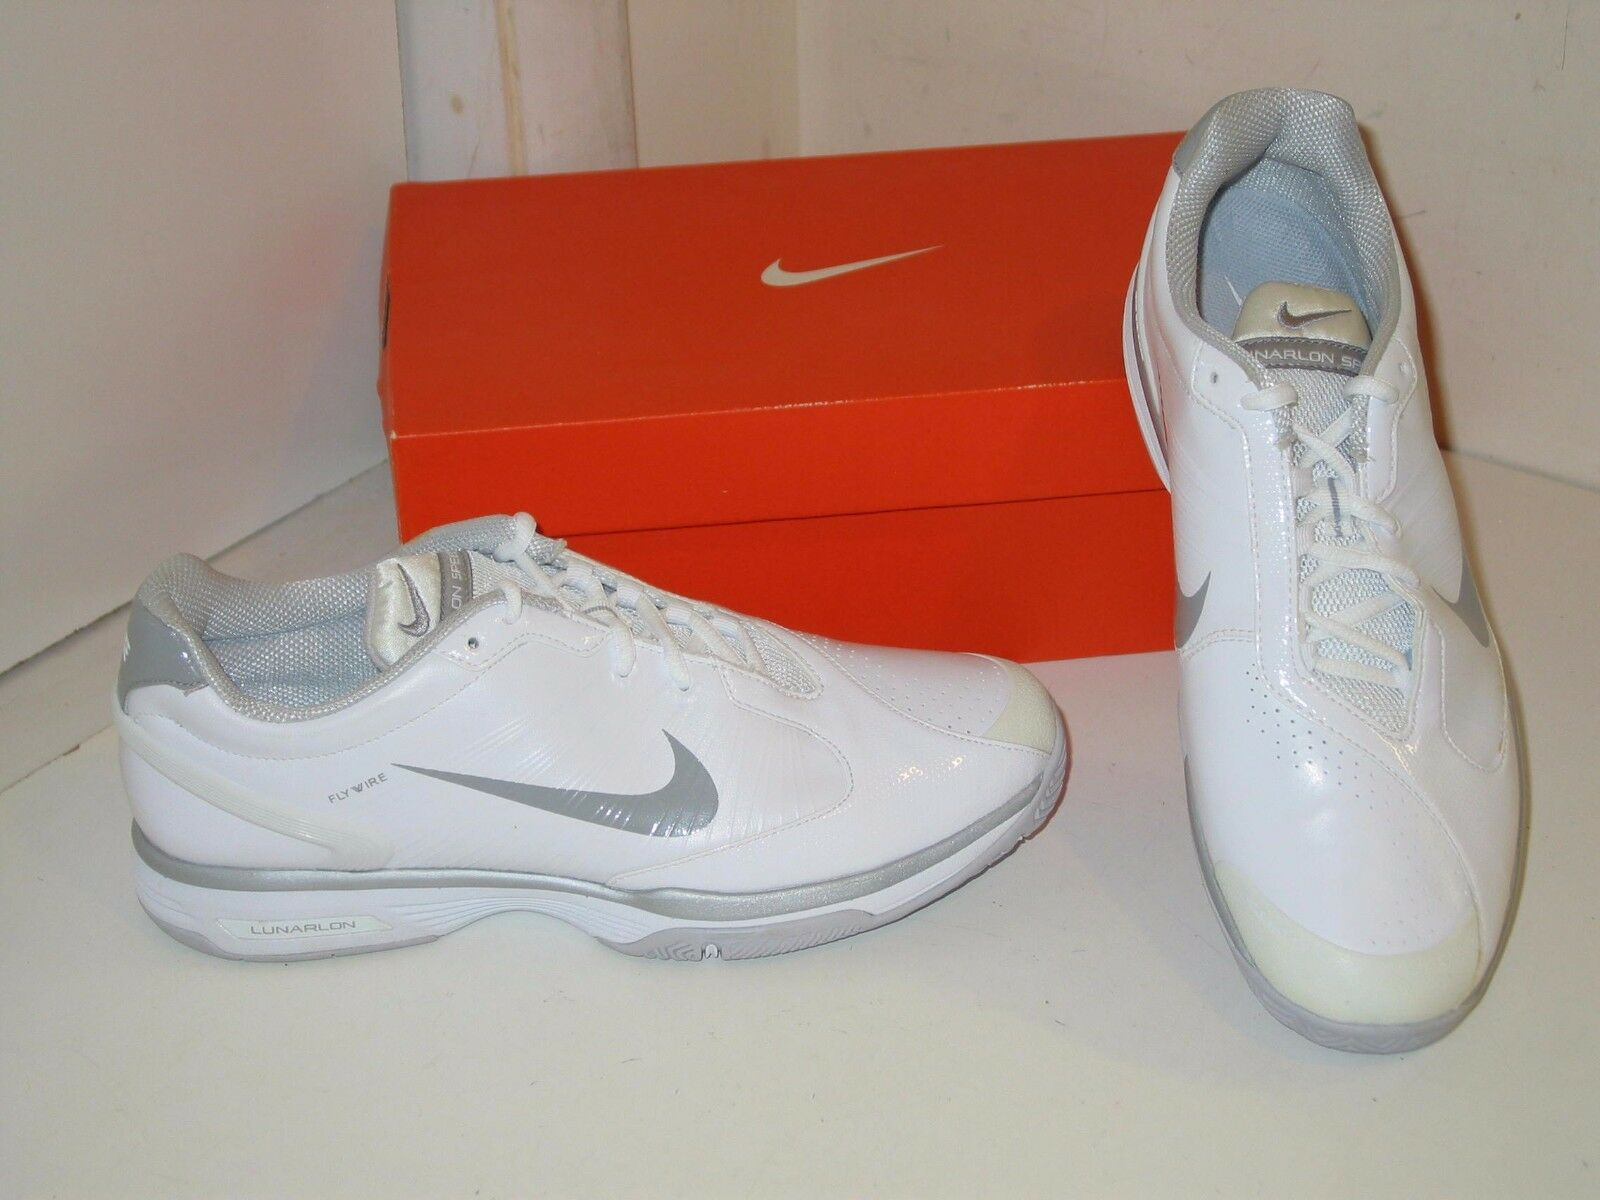 Nike Lunar Speed 2 II Lunarlite Lunarlon Flywire White Tennis Shoes Womens 10.5